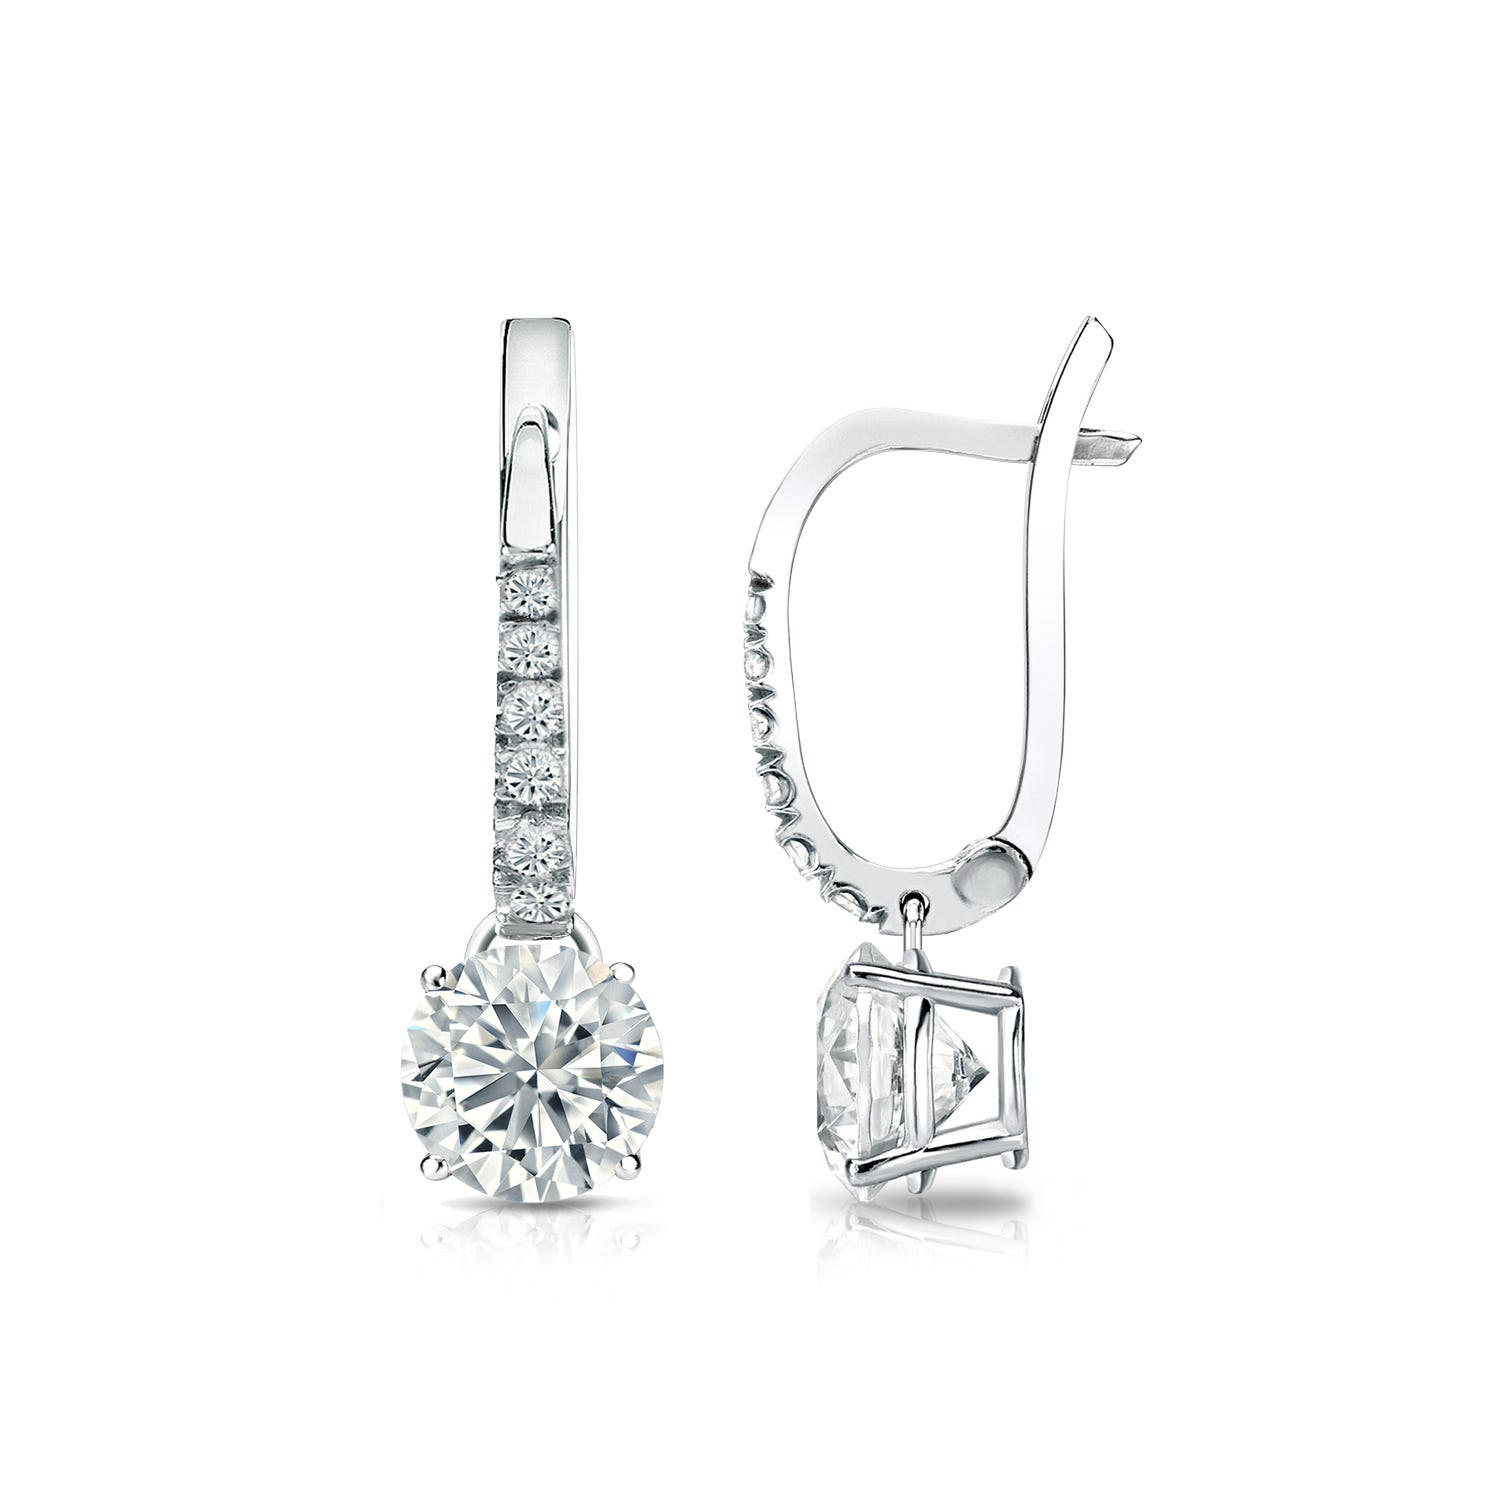 Diamond 4-Prong Round Drop Earrings 1ctw. In 14k White Gold I1 Clarity